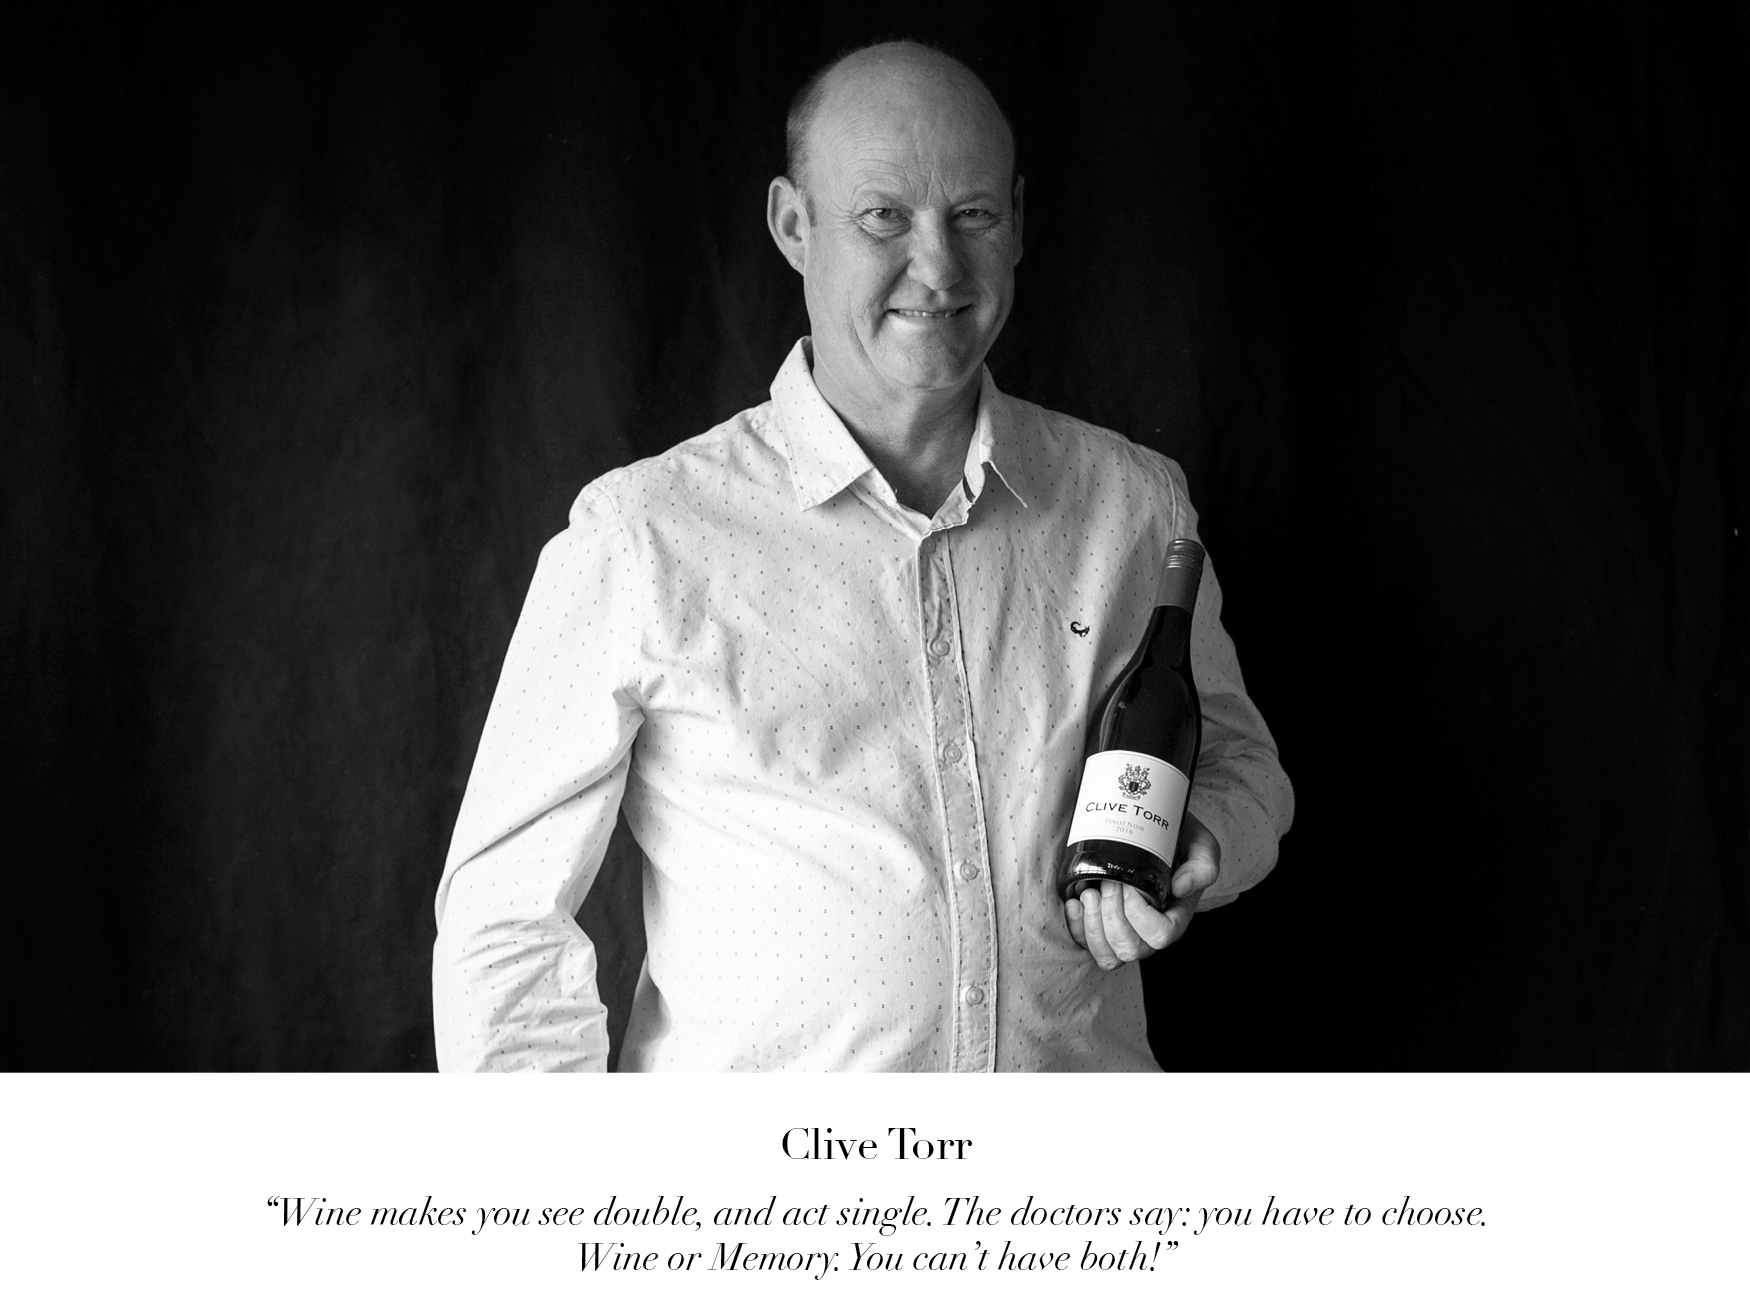 Clive Torr Wine of the Month Club wine judge